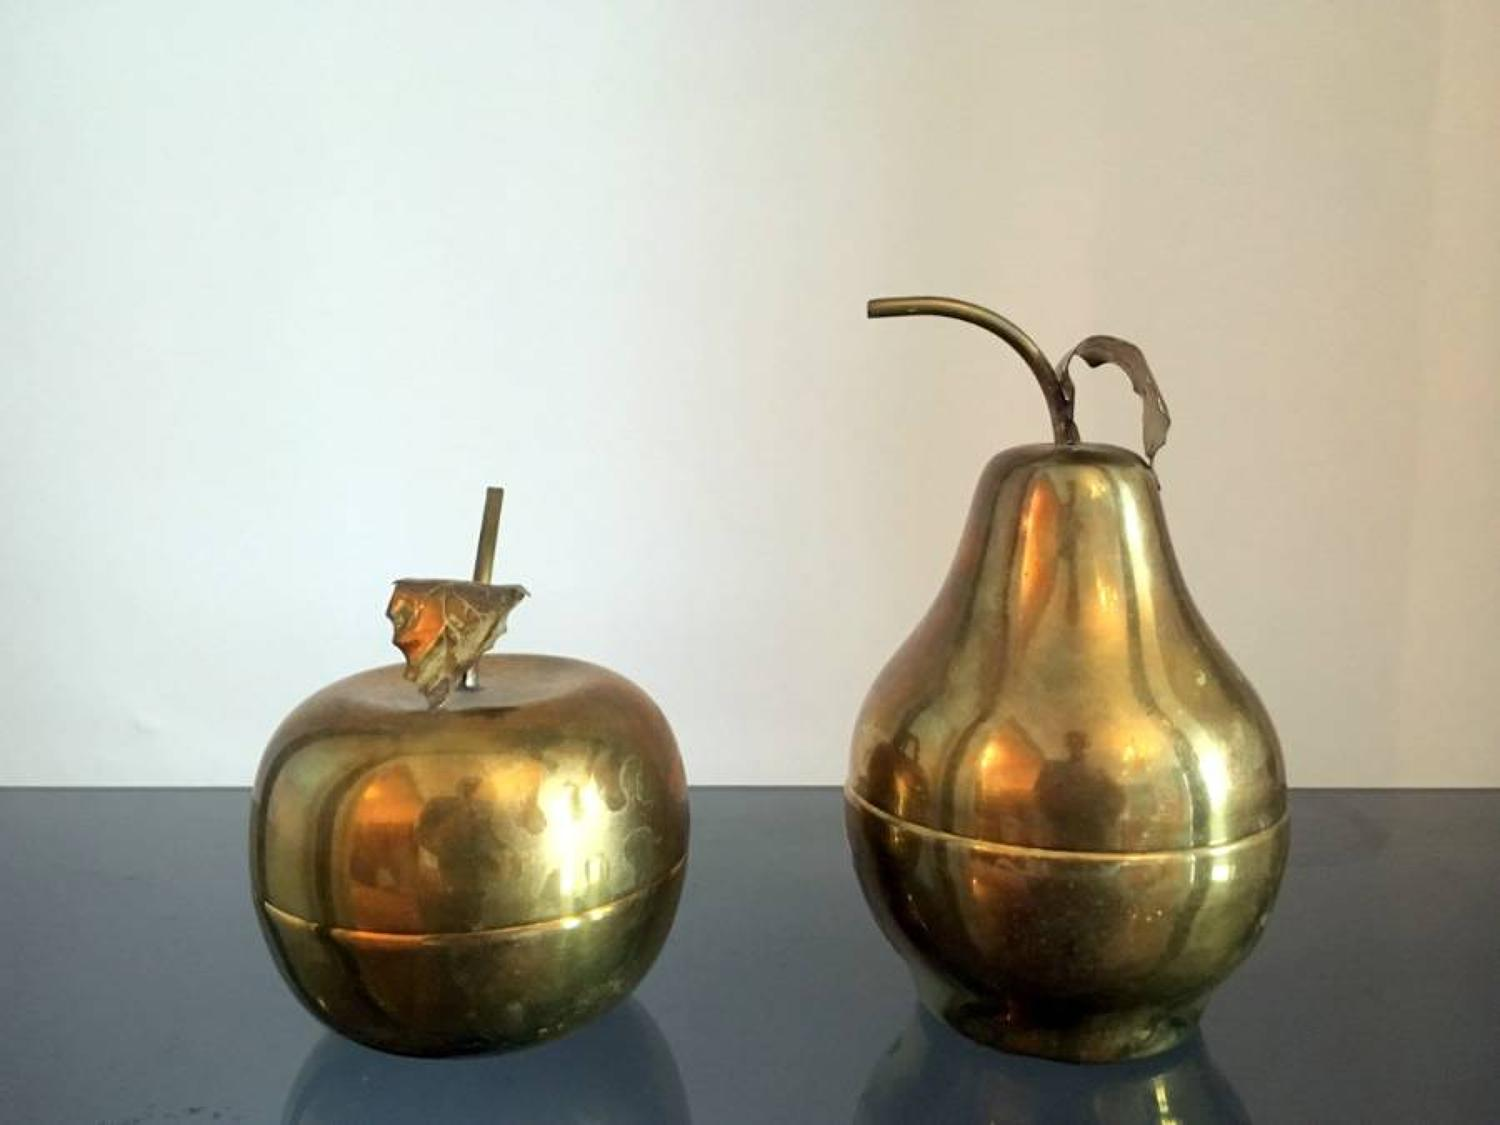 A brass apple and a brass pear dish